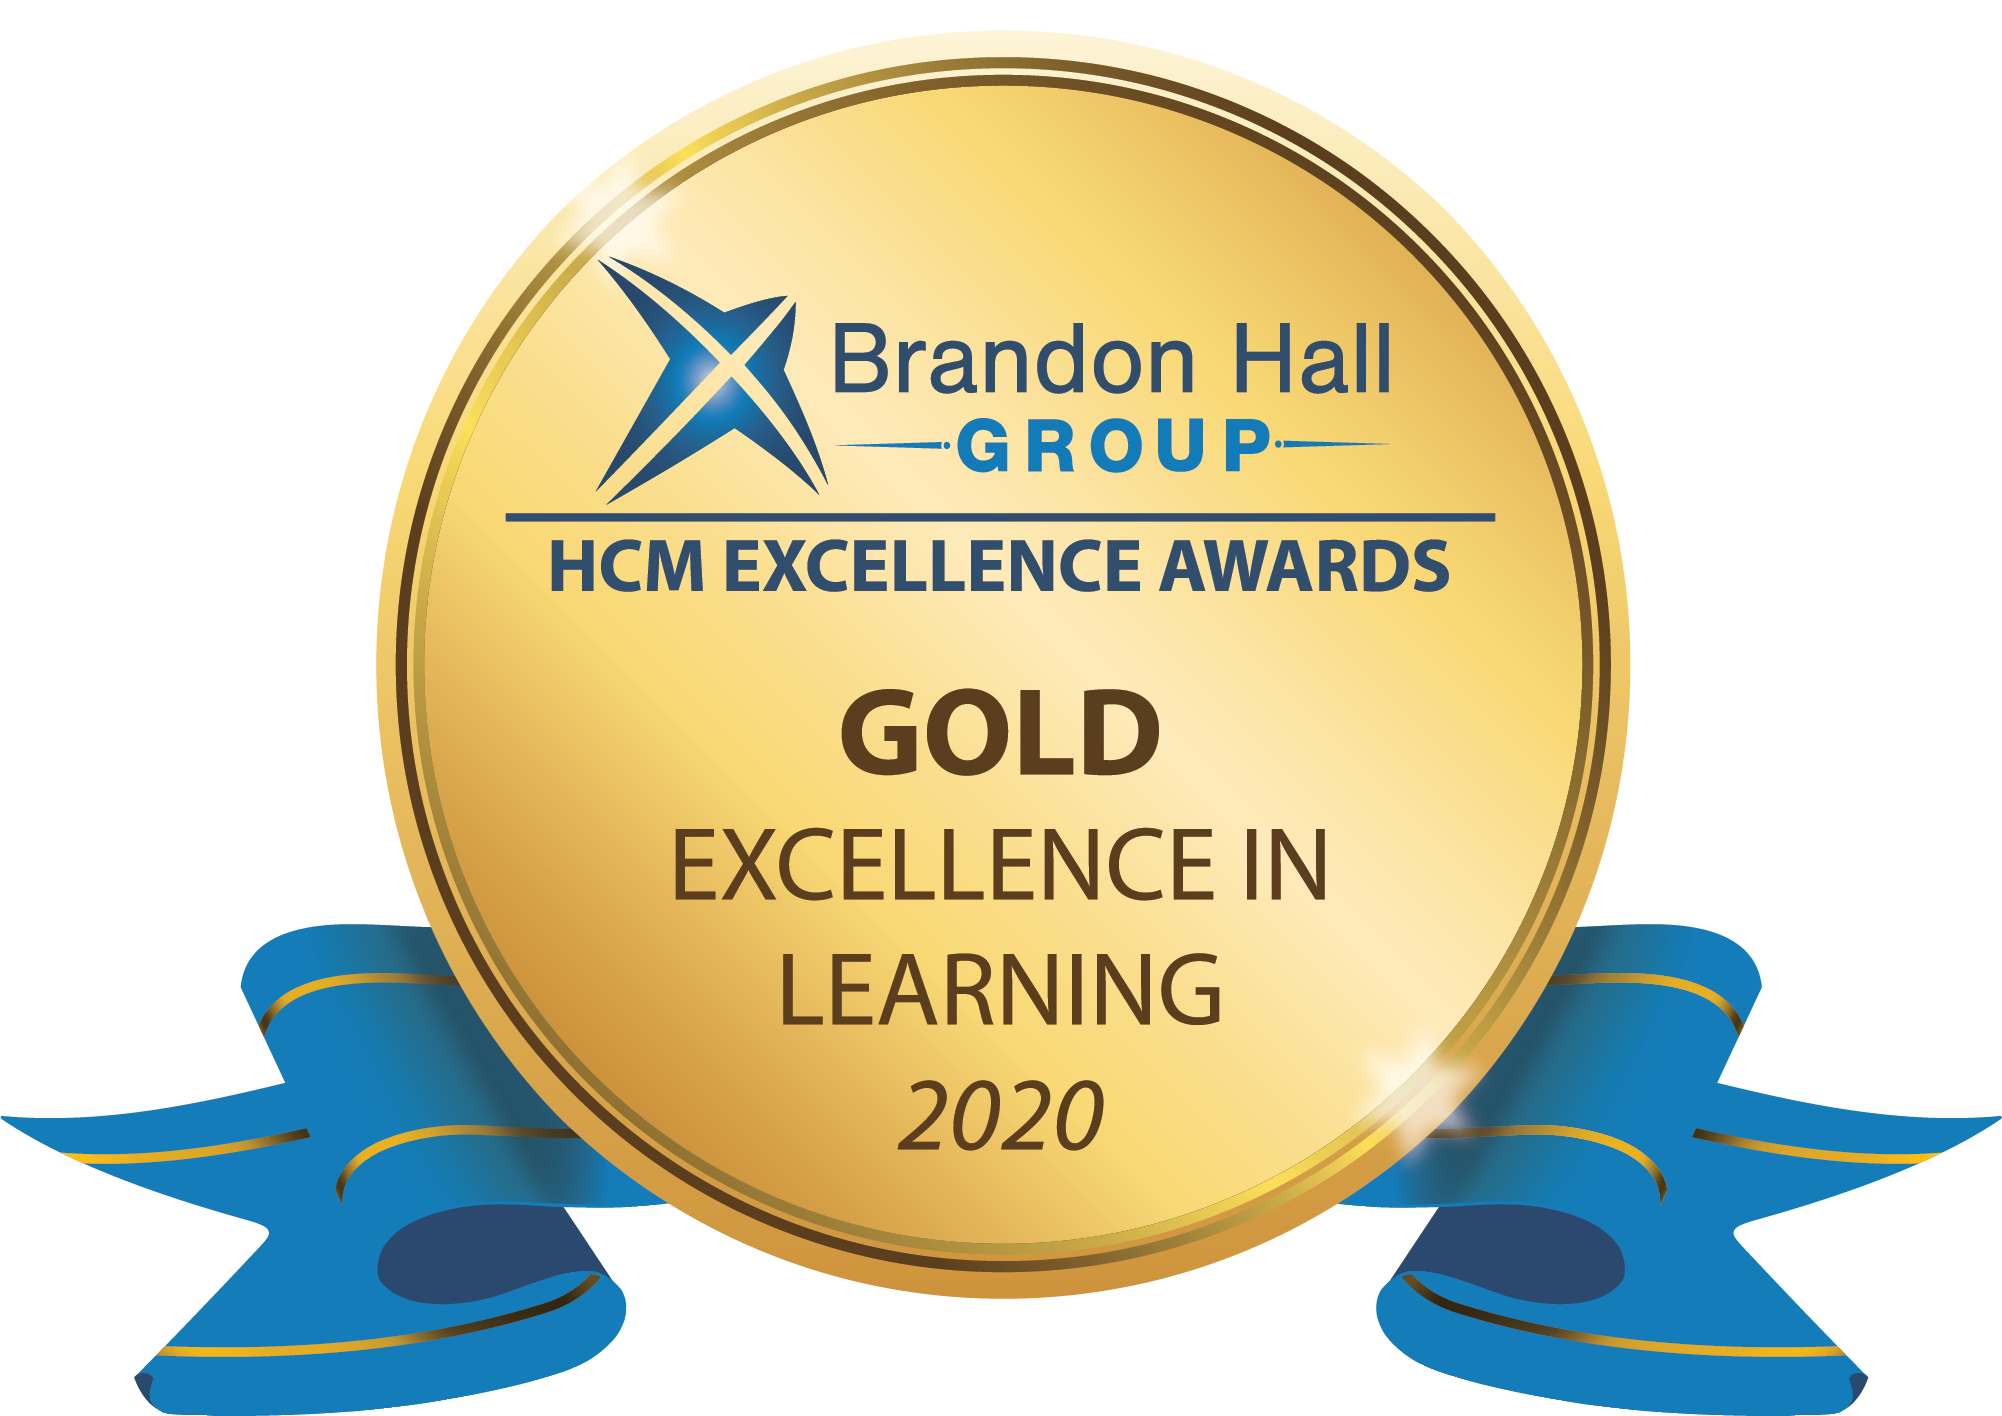 Gold-Learning-Award-2020-01.png